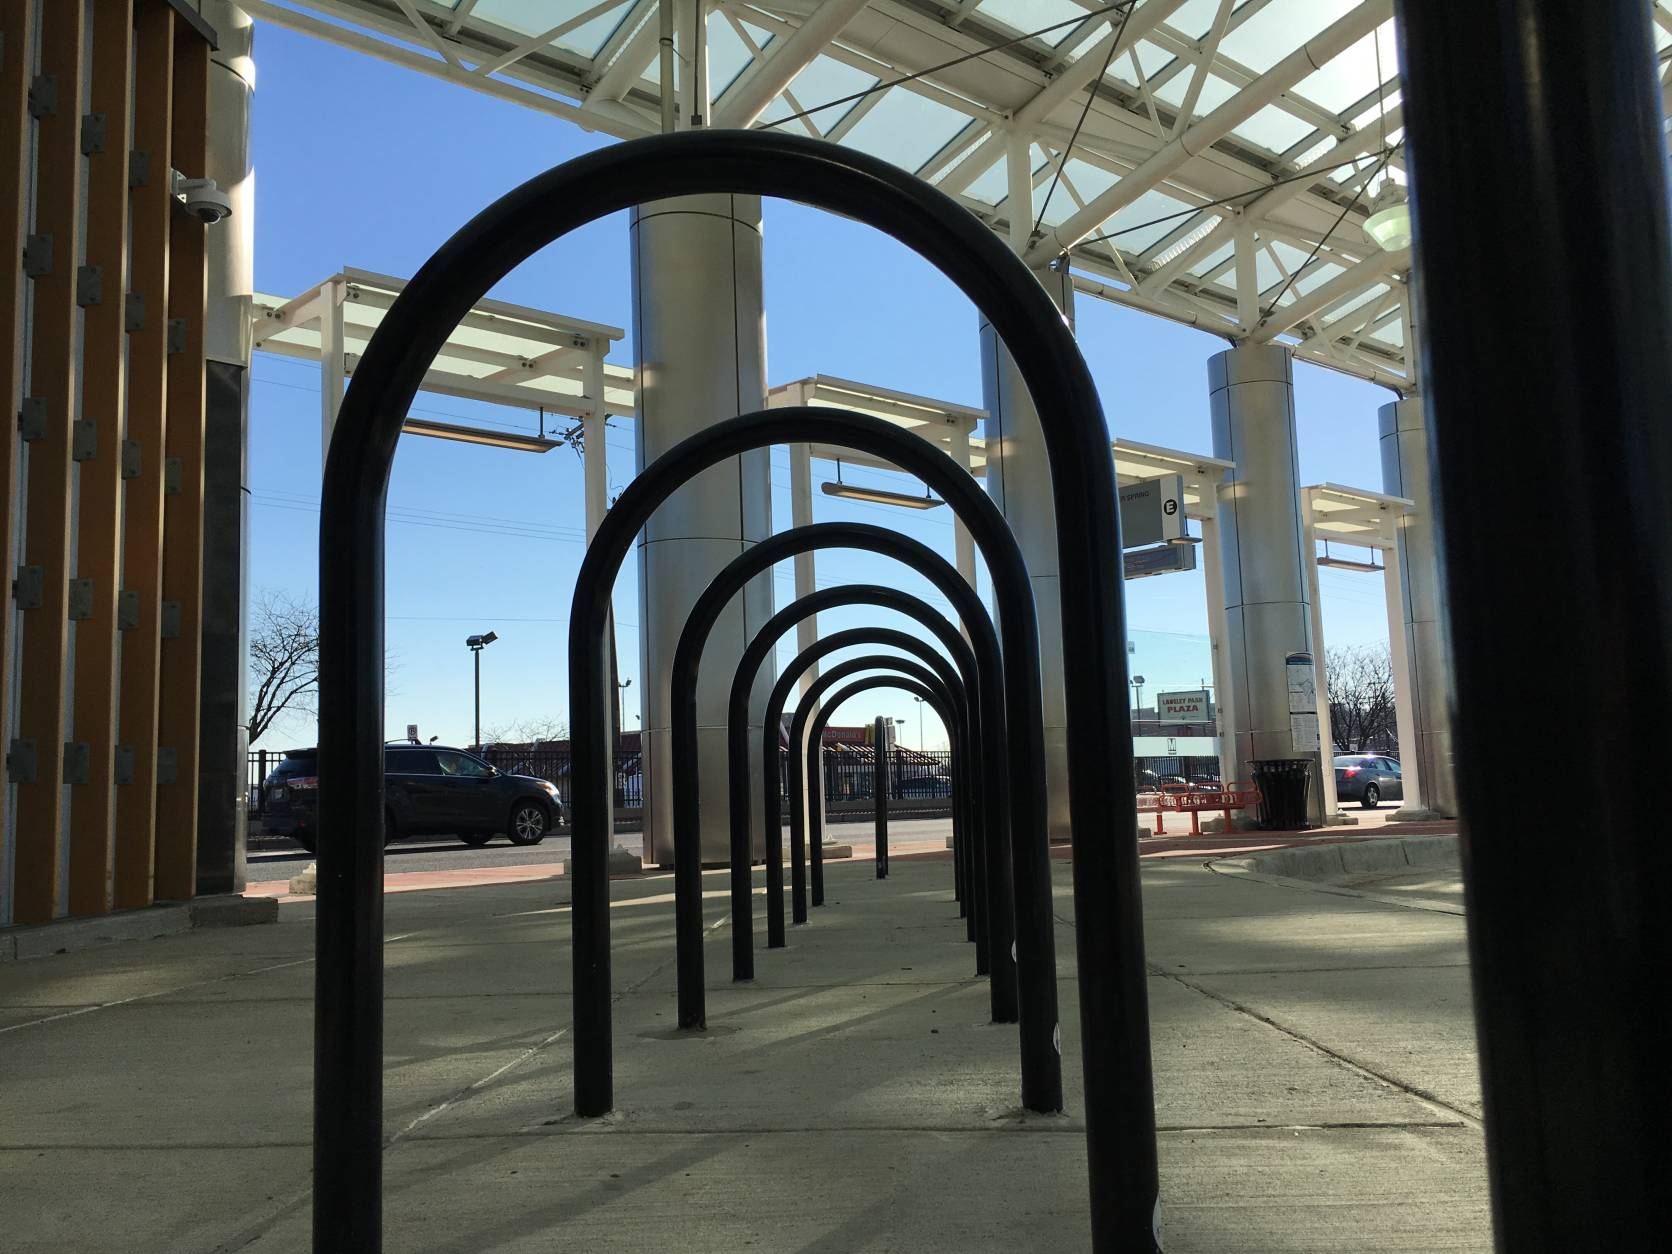 Bike racks are among the features at the new transit center. (WTOP/Kate Ryan)